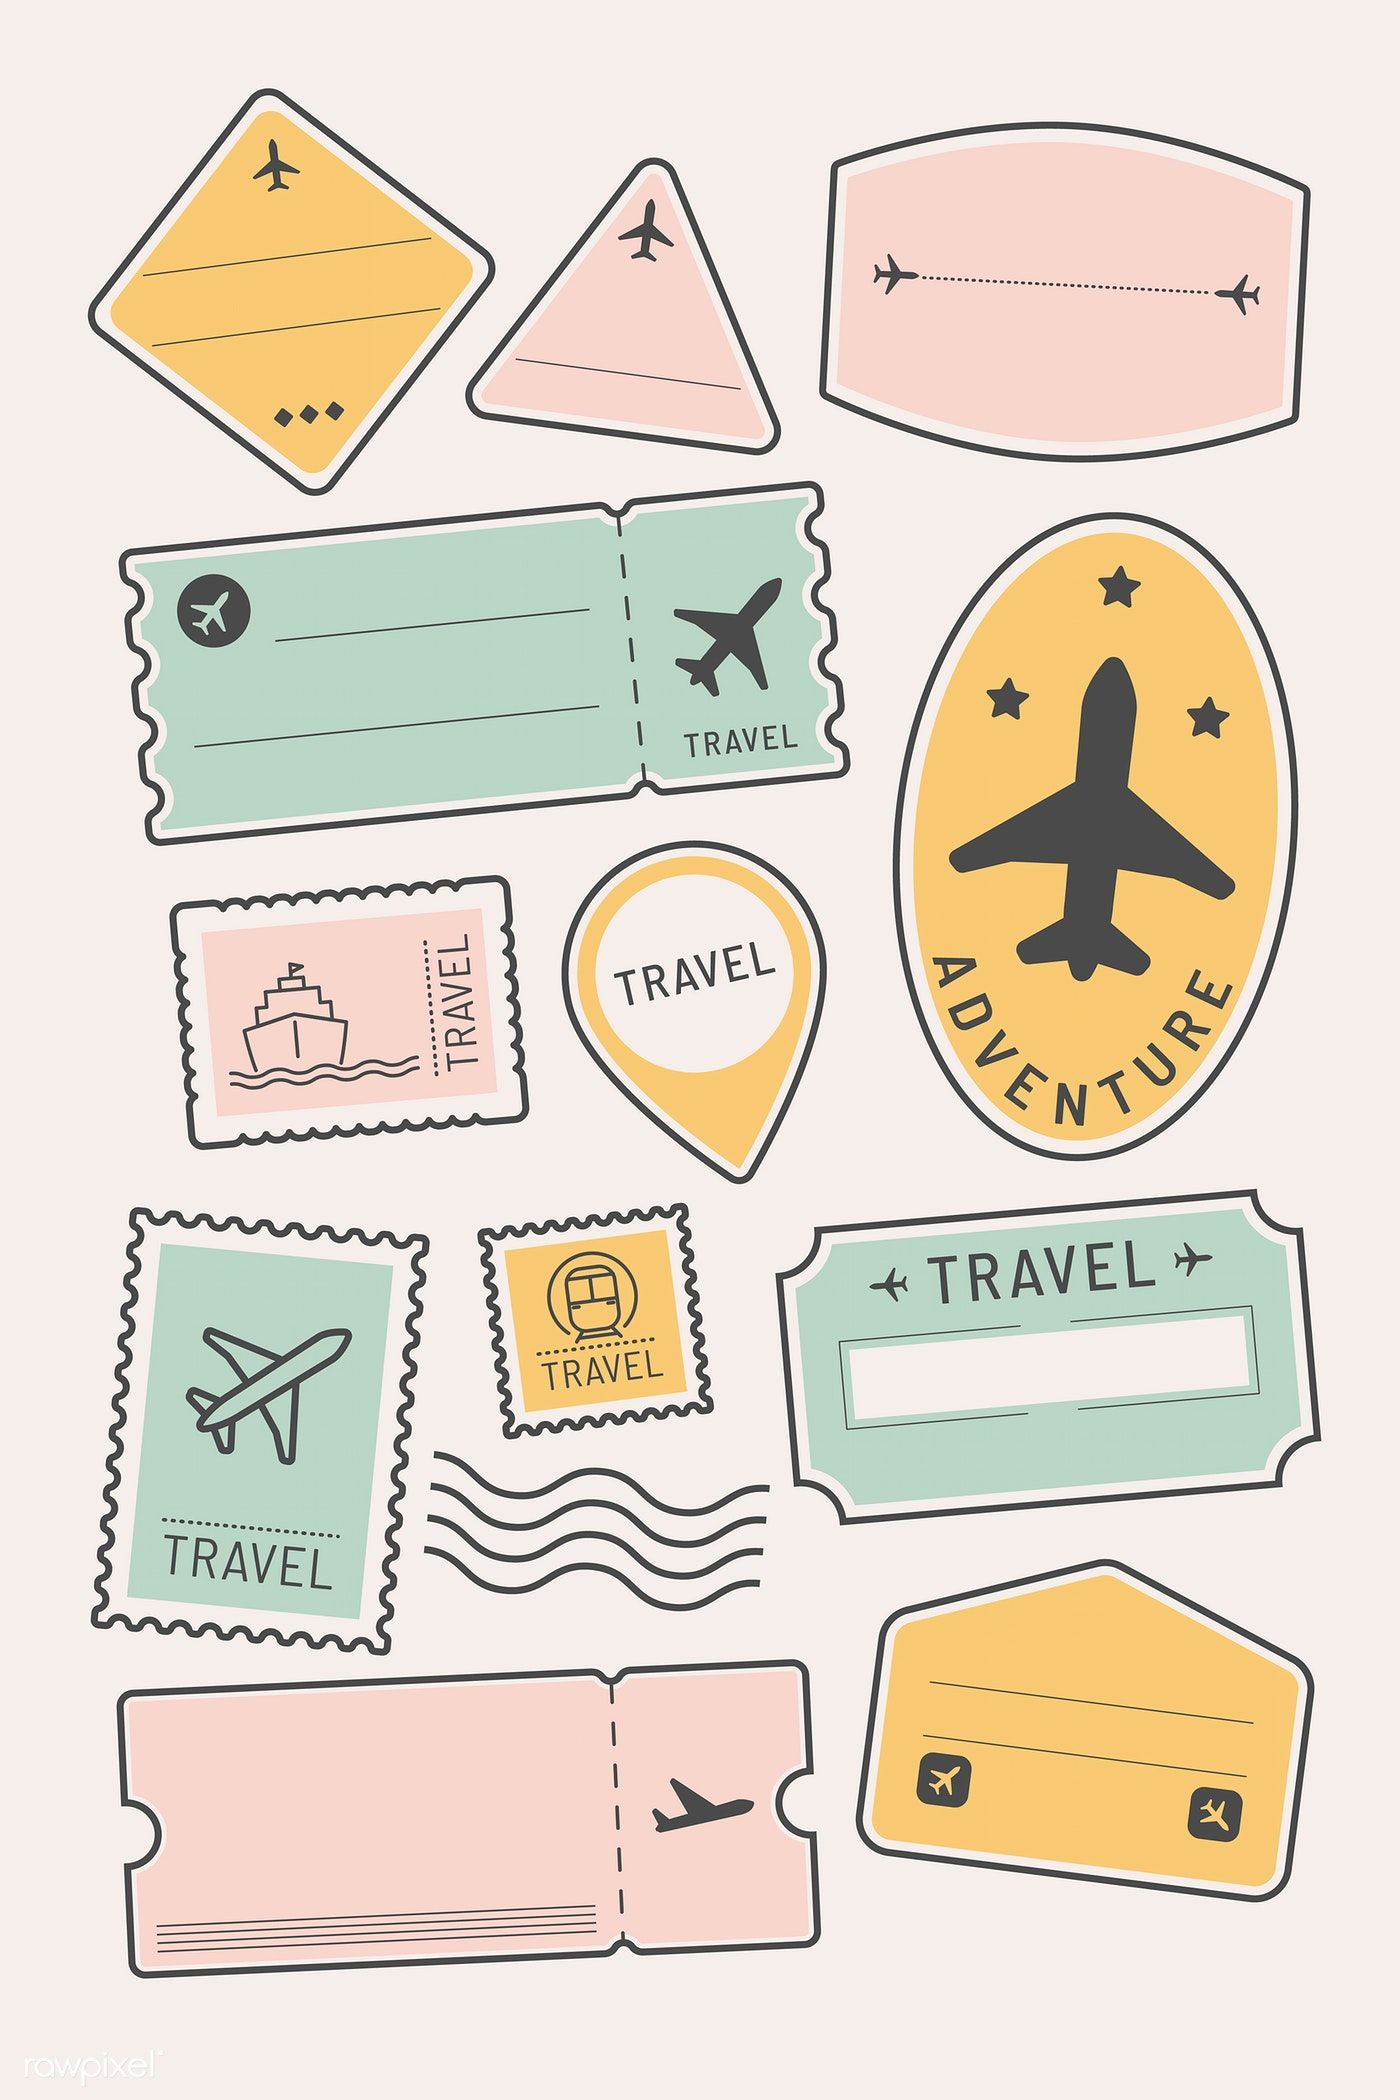 Travel stickers and badge set vector | premium image by rawpixel.com / Mon